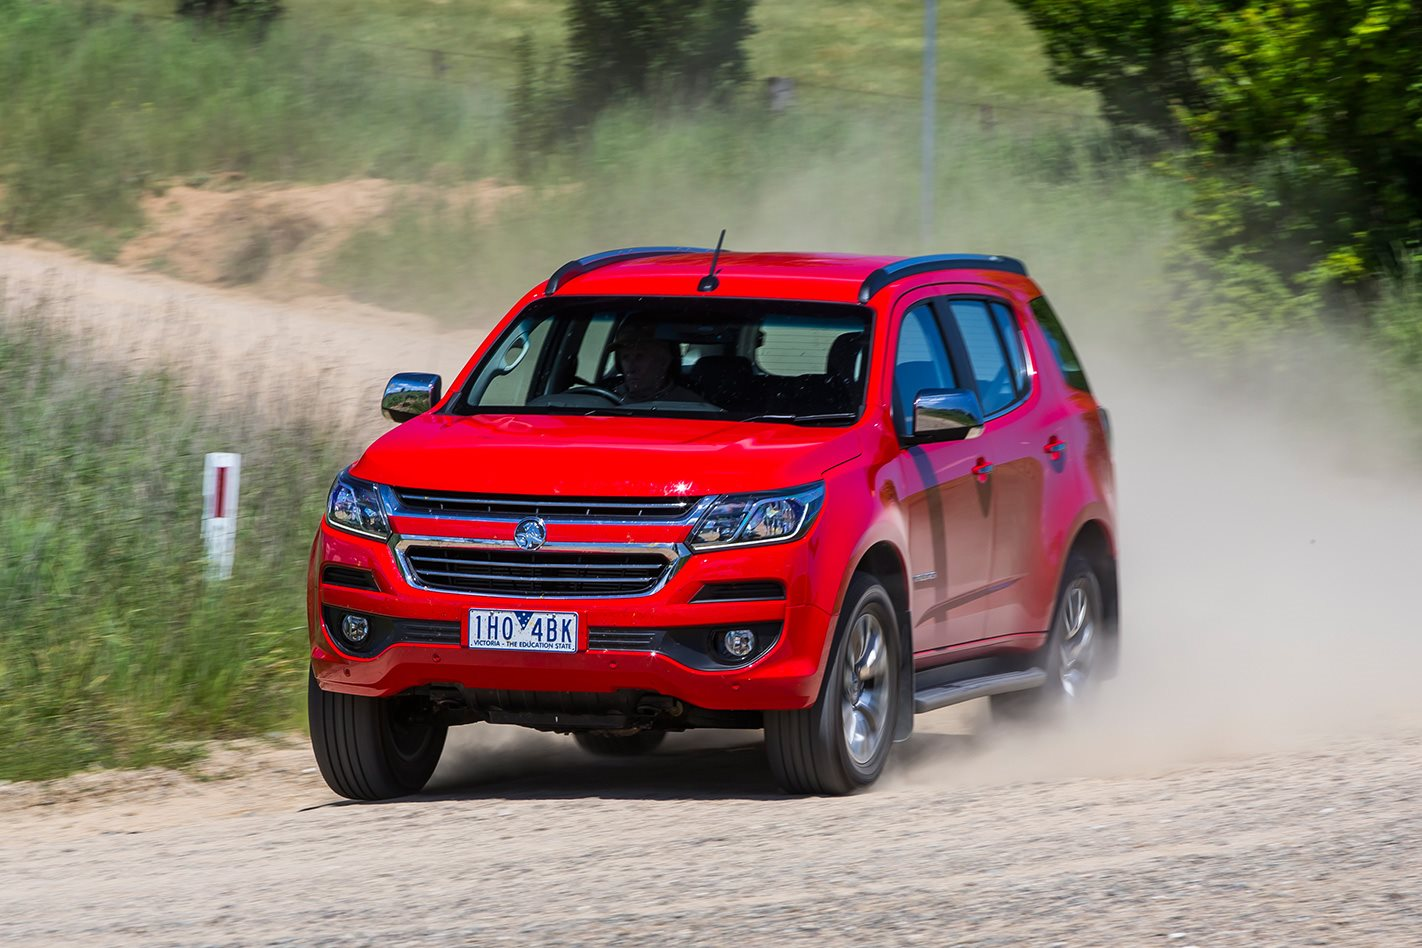 2016 Holden Trailblazer Video Review 4x4 Australia